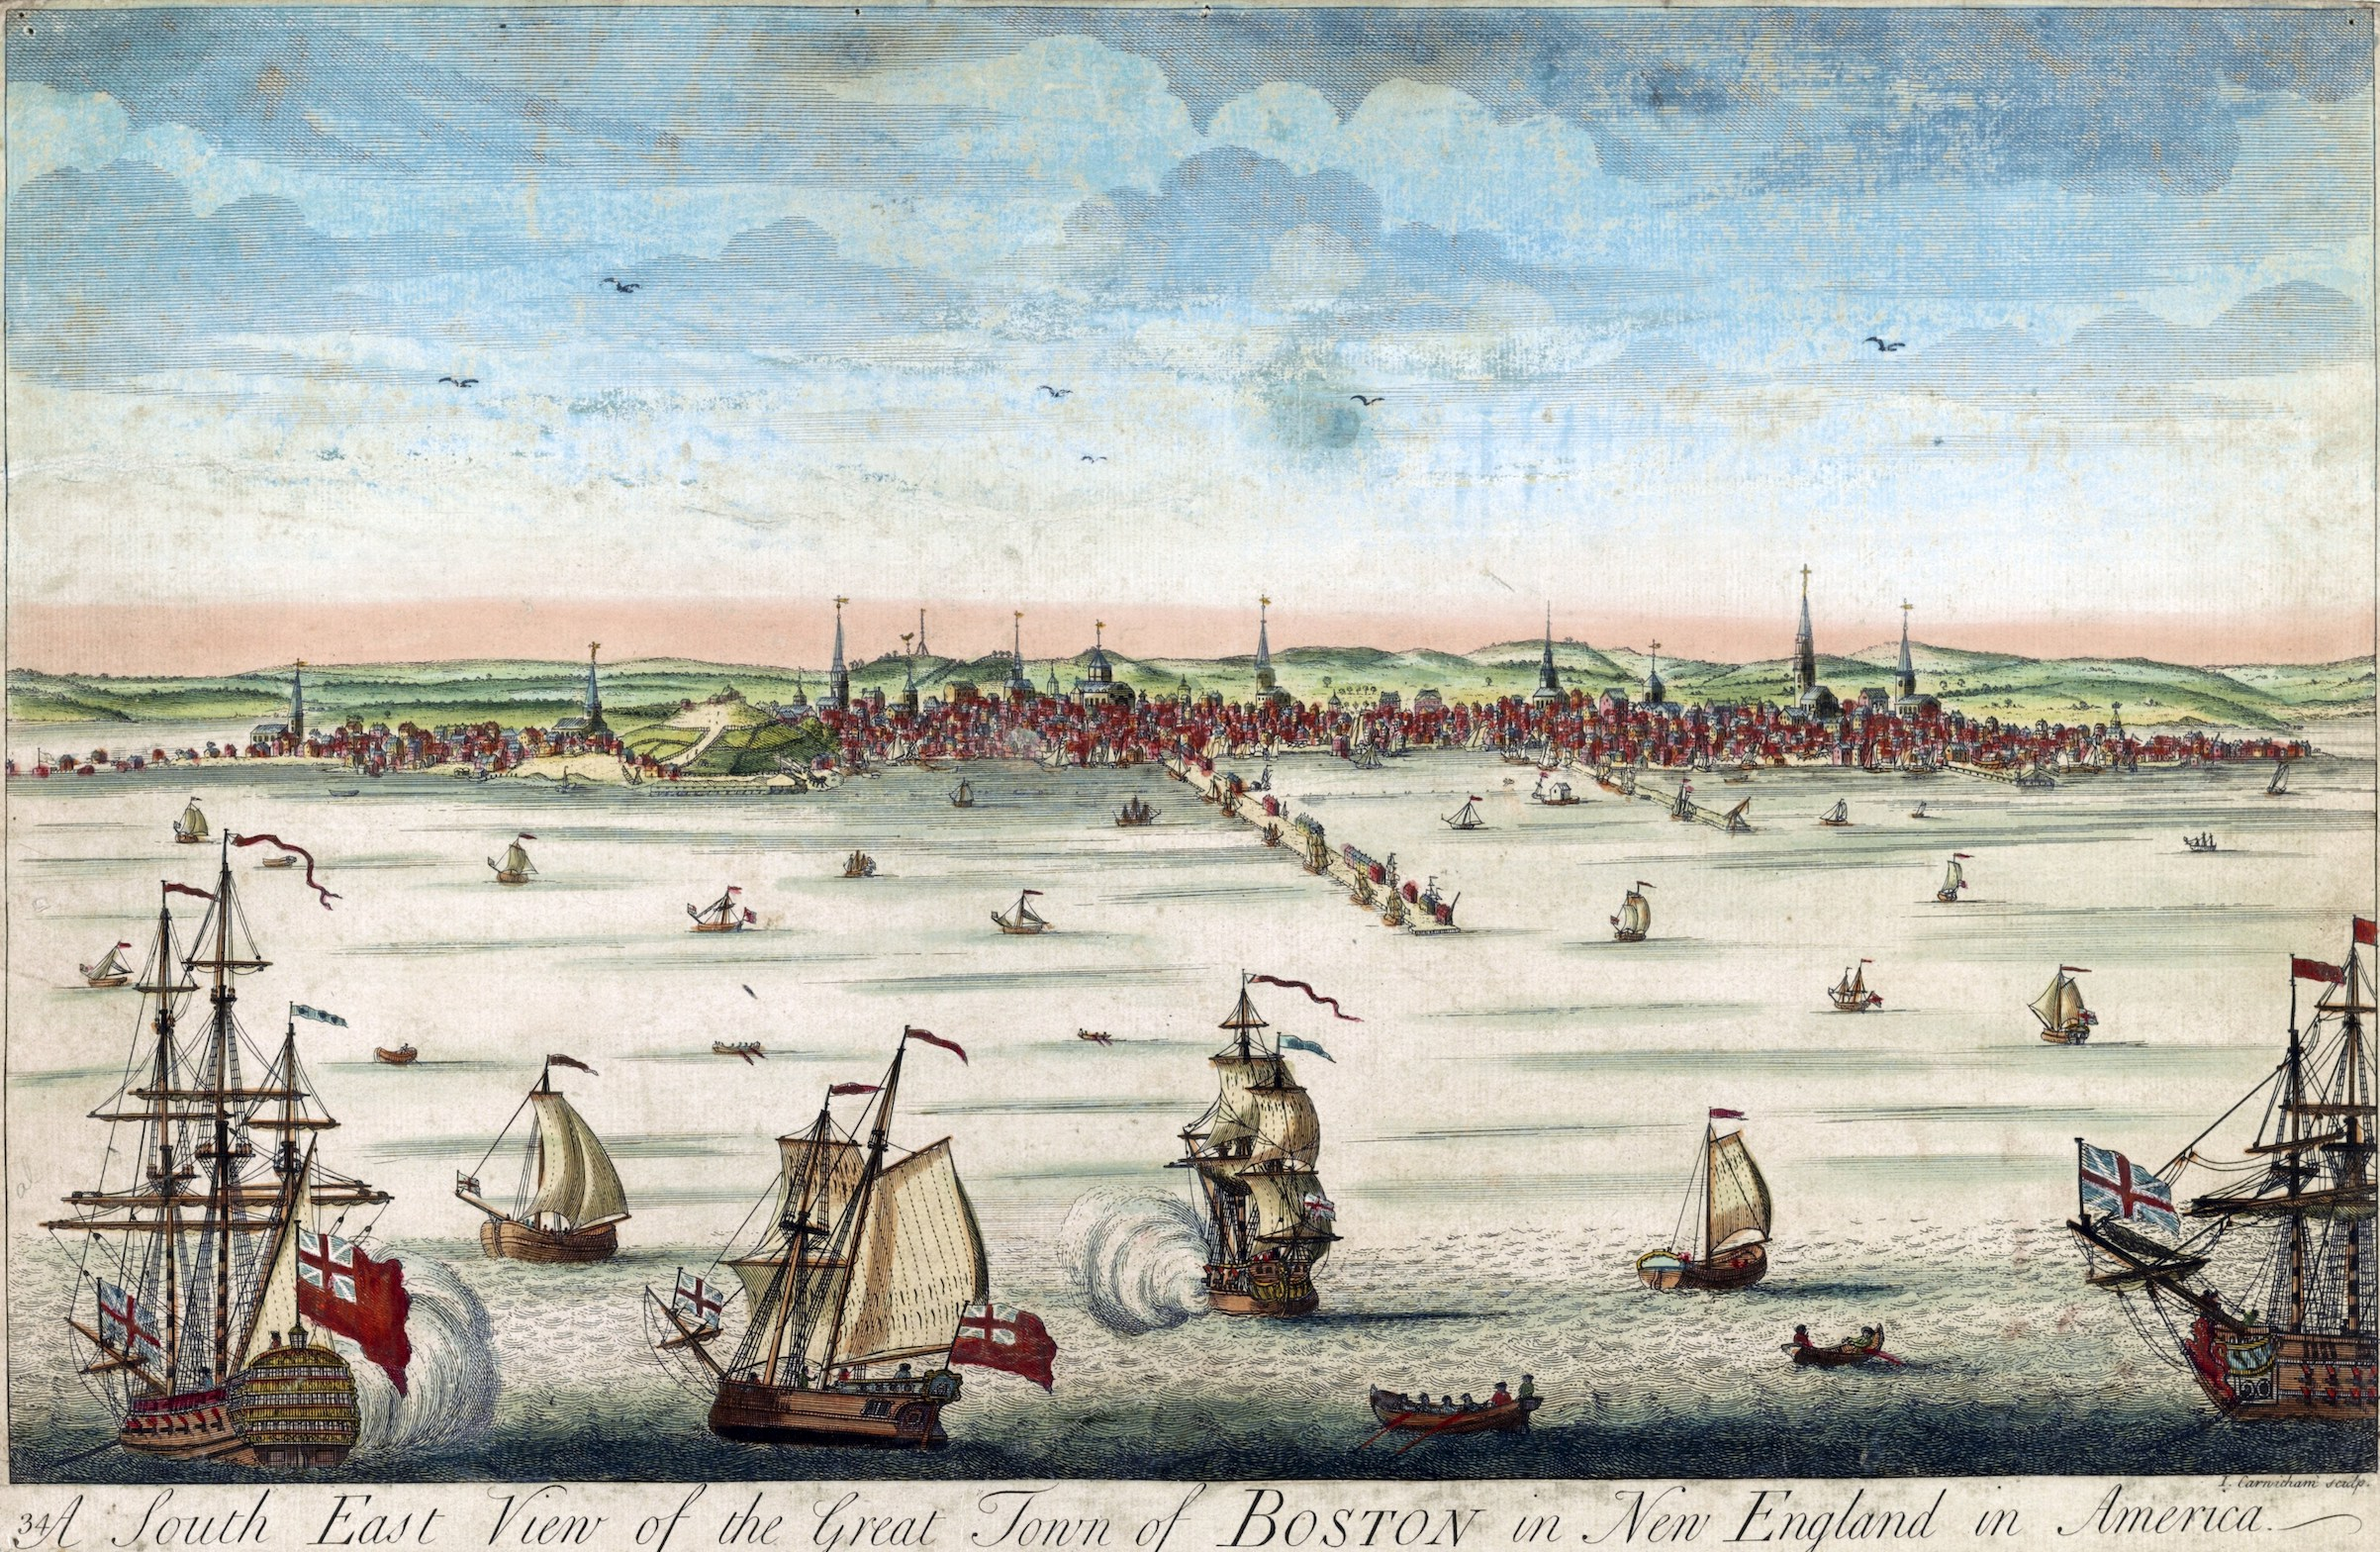 A view of Boston from the harbor, with ships in the foreground. Created by John Carwitham, mid-18th century.